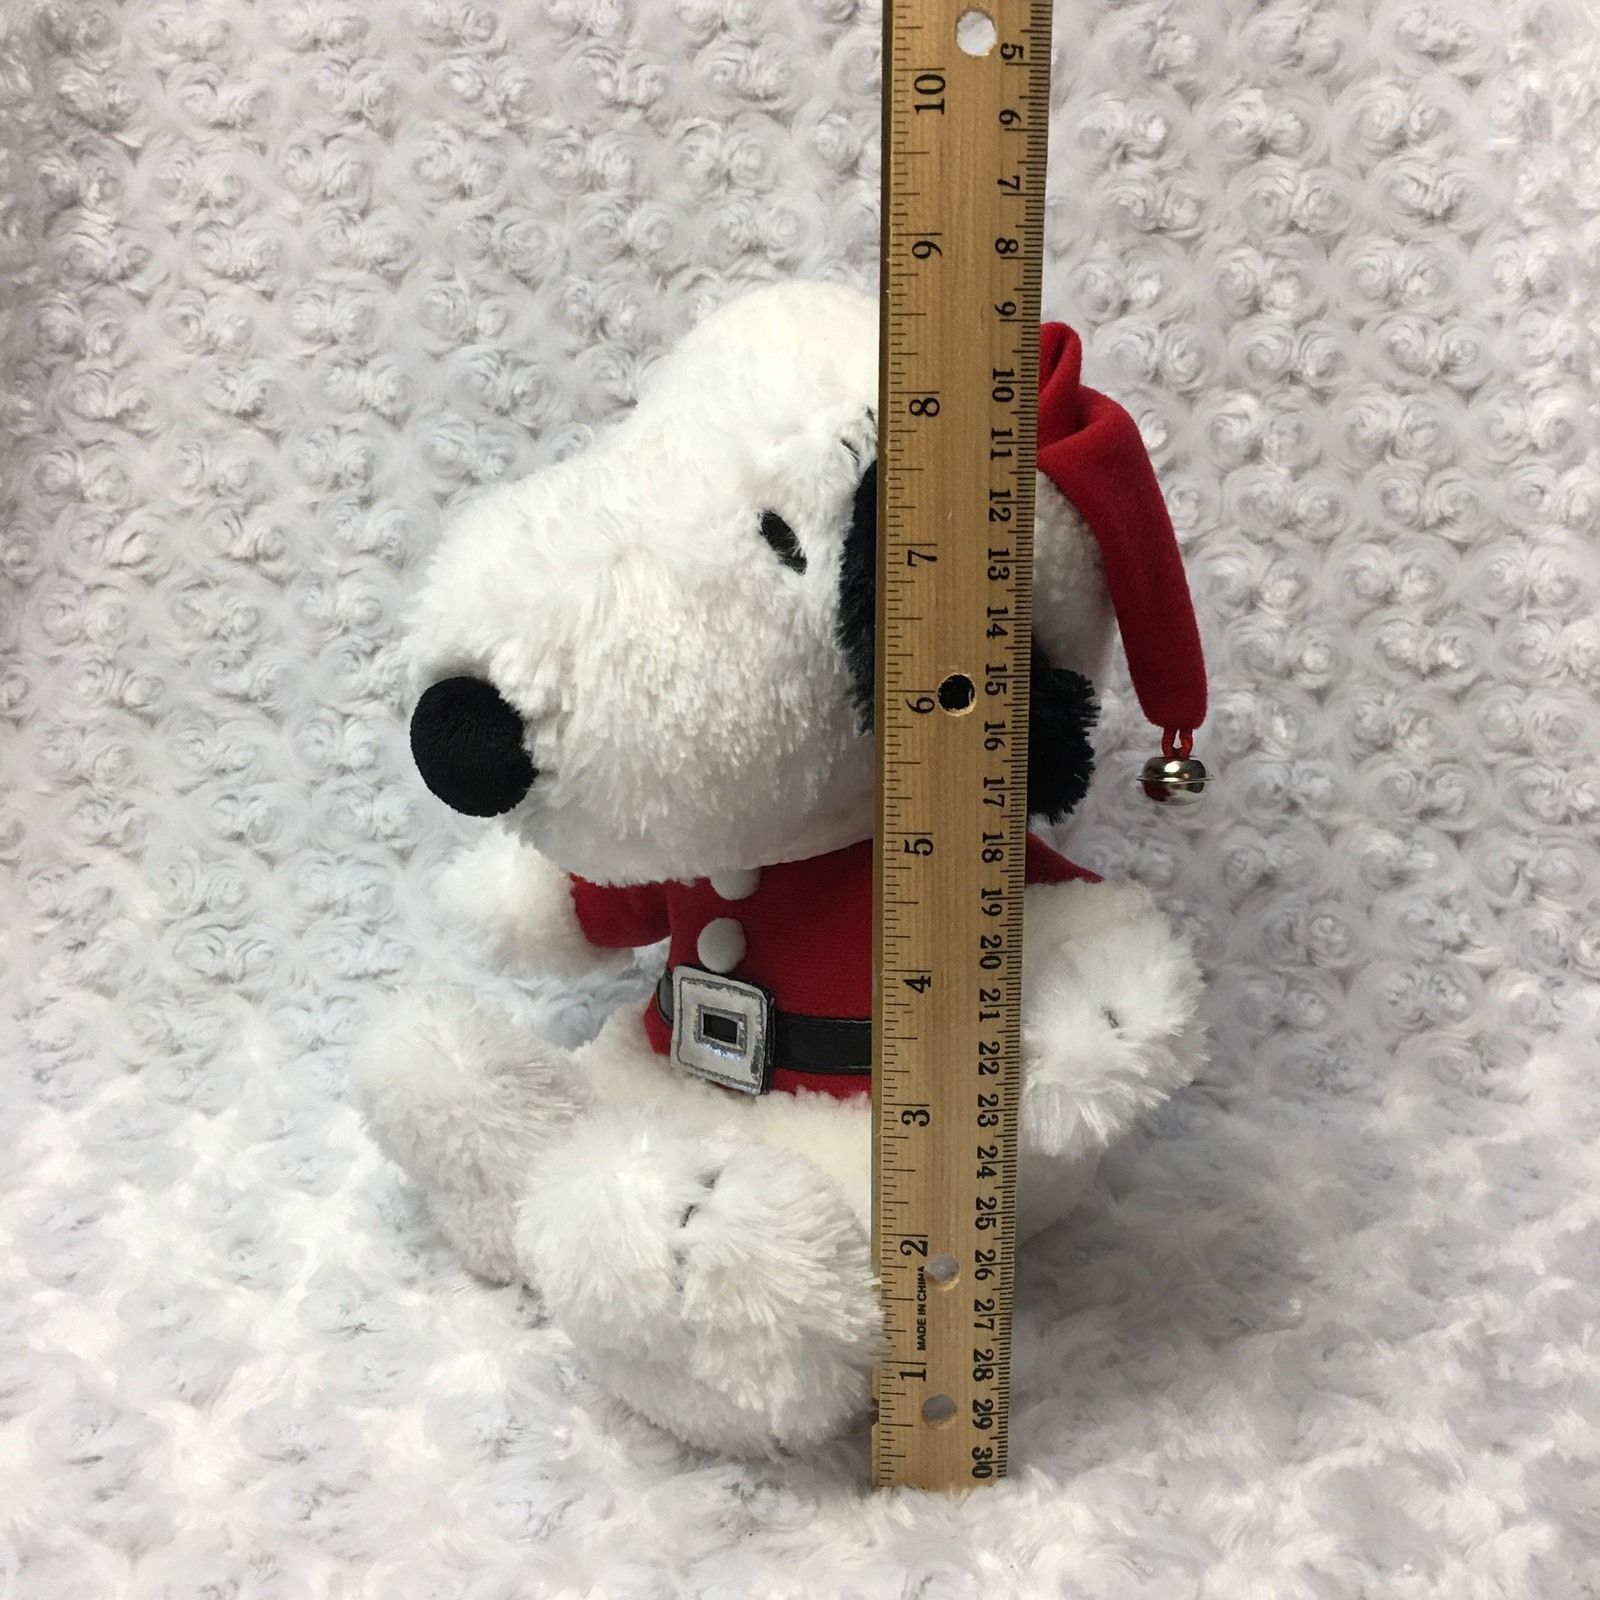 Snoopy Peanuts Hallmark Medium Christmas Holiday Stuffed Plush as Santa Bell Hat image 2